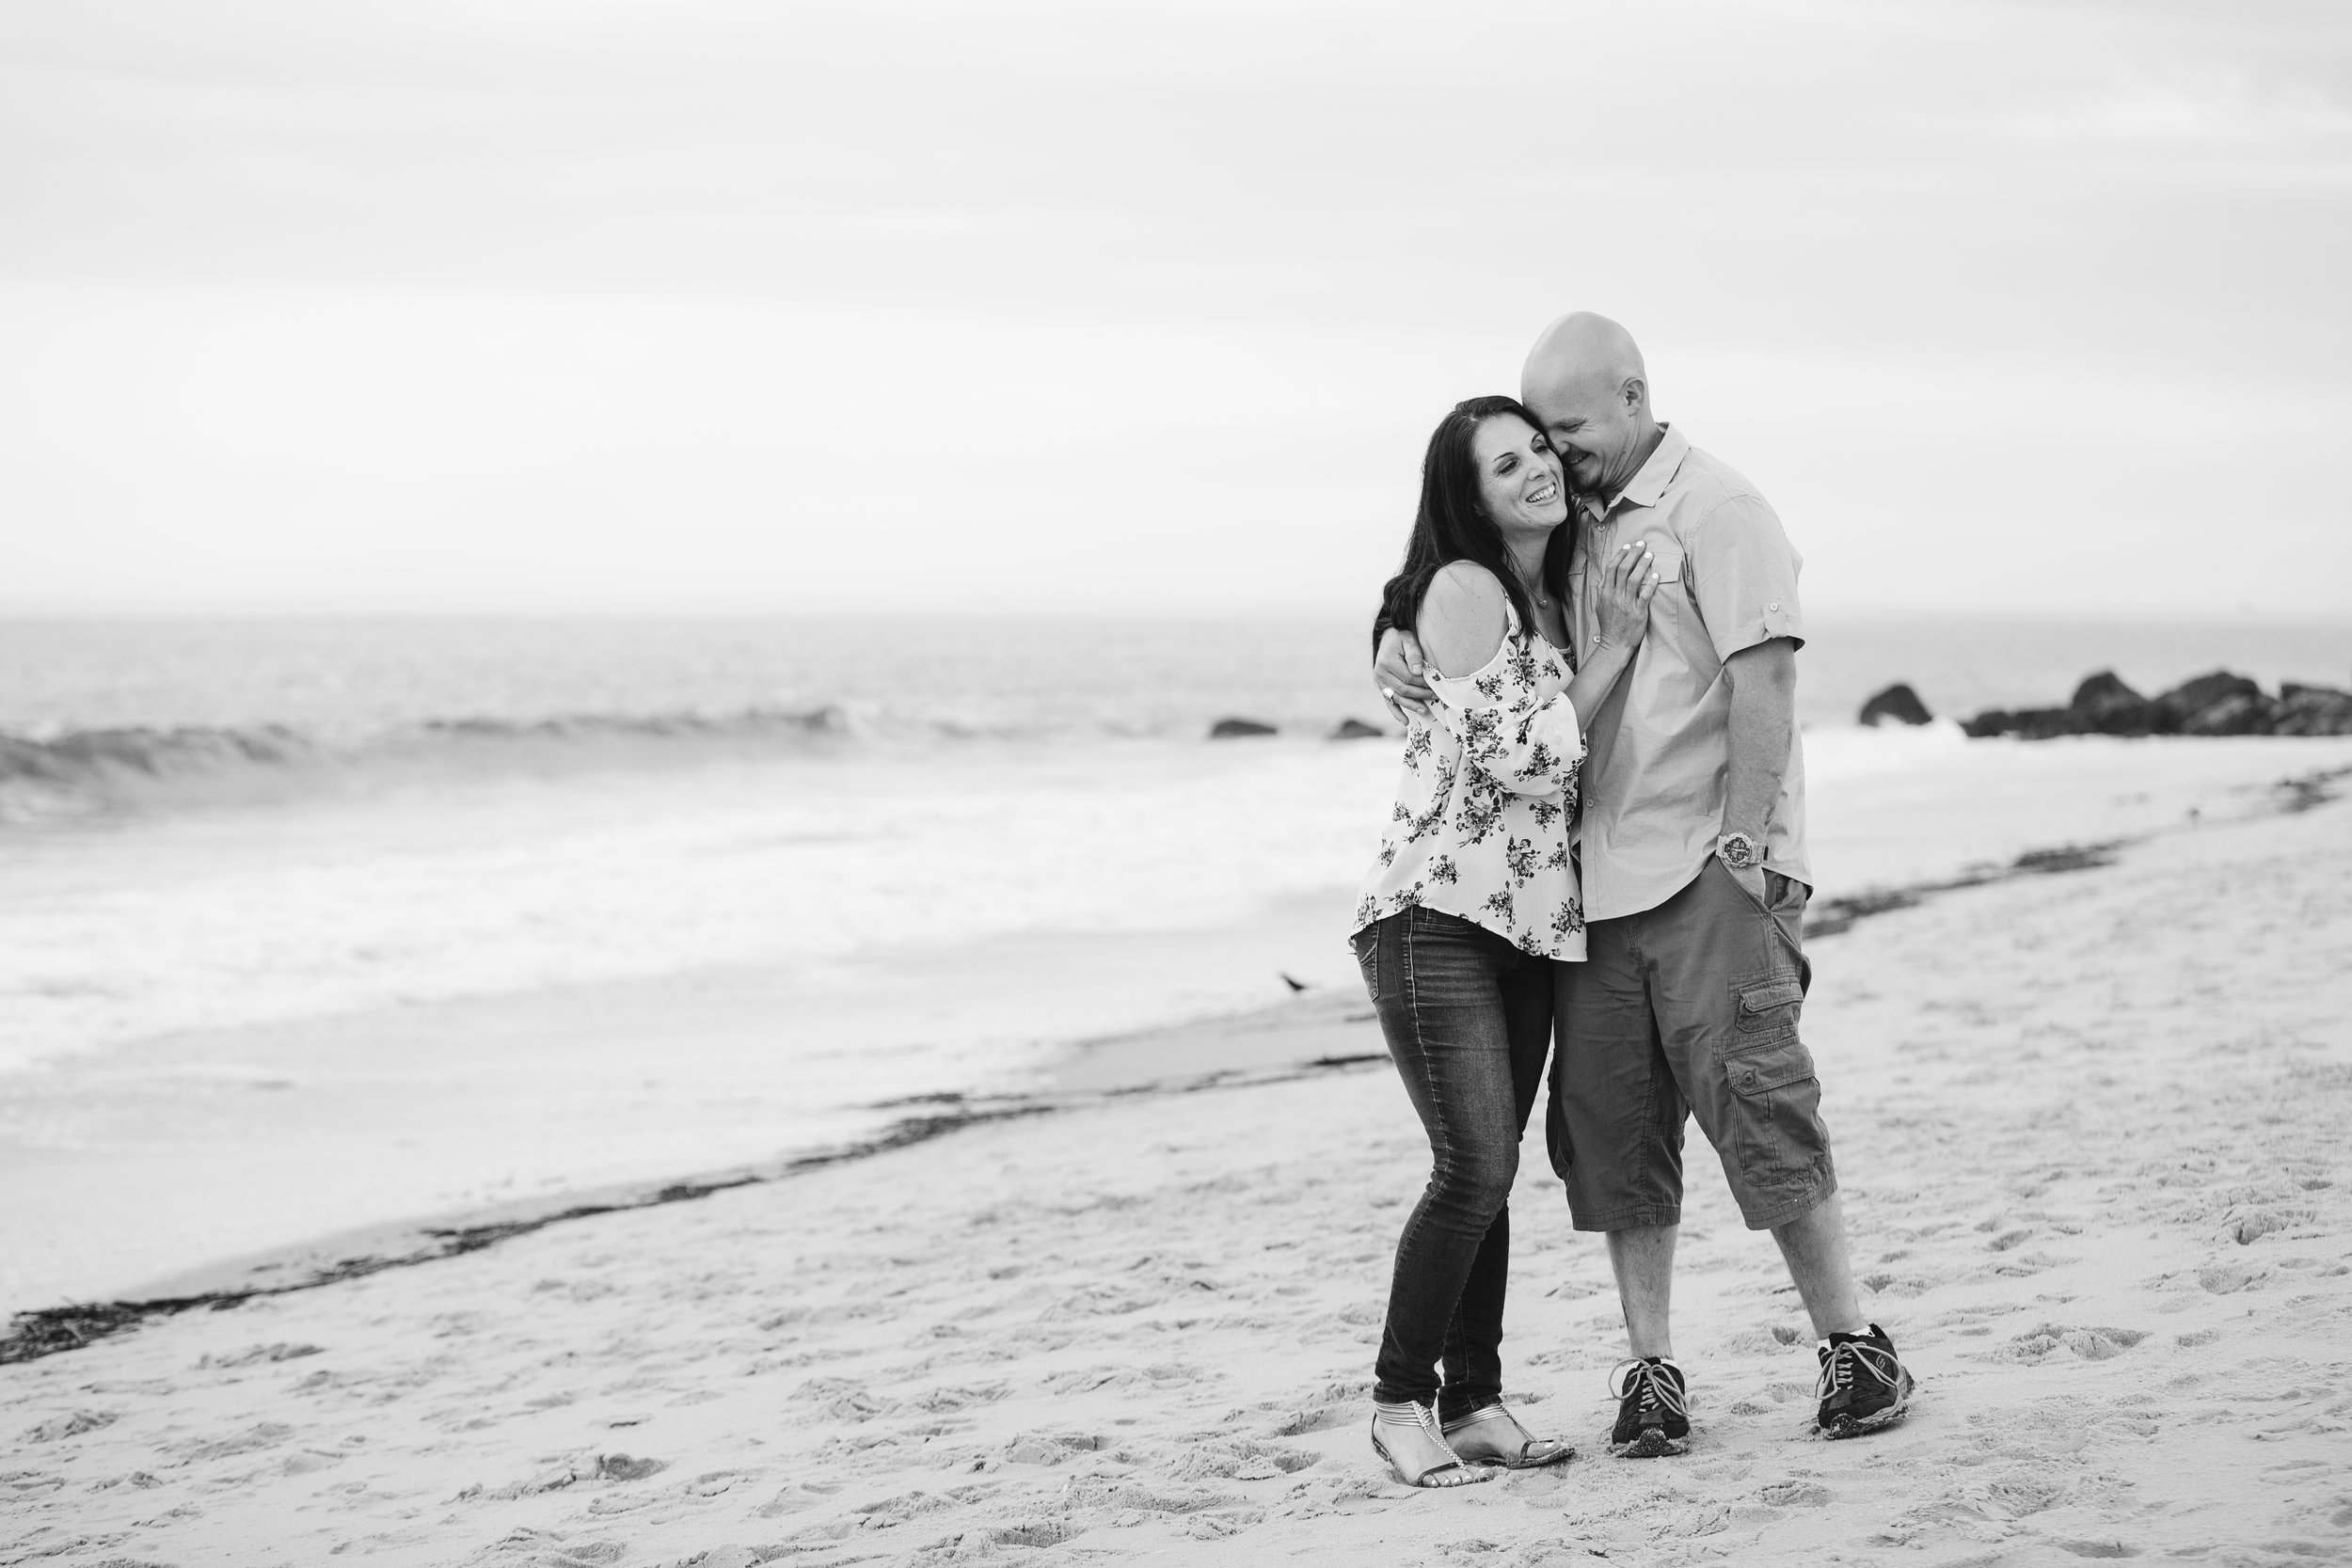 StaceyandJohnEngagementPrints-17.jpg